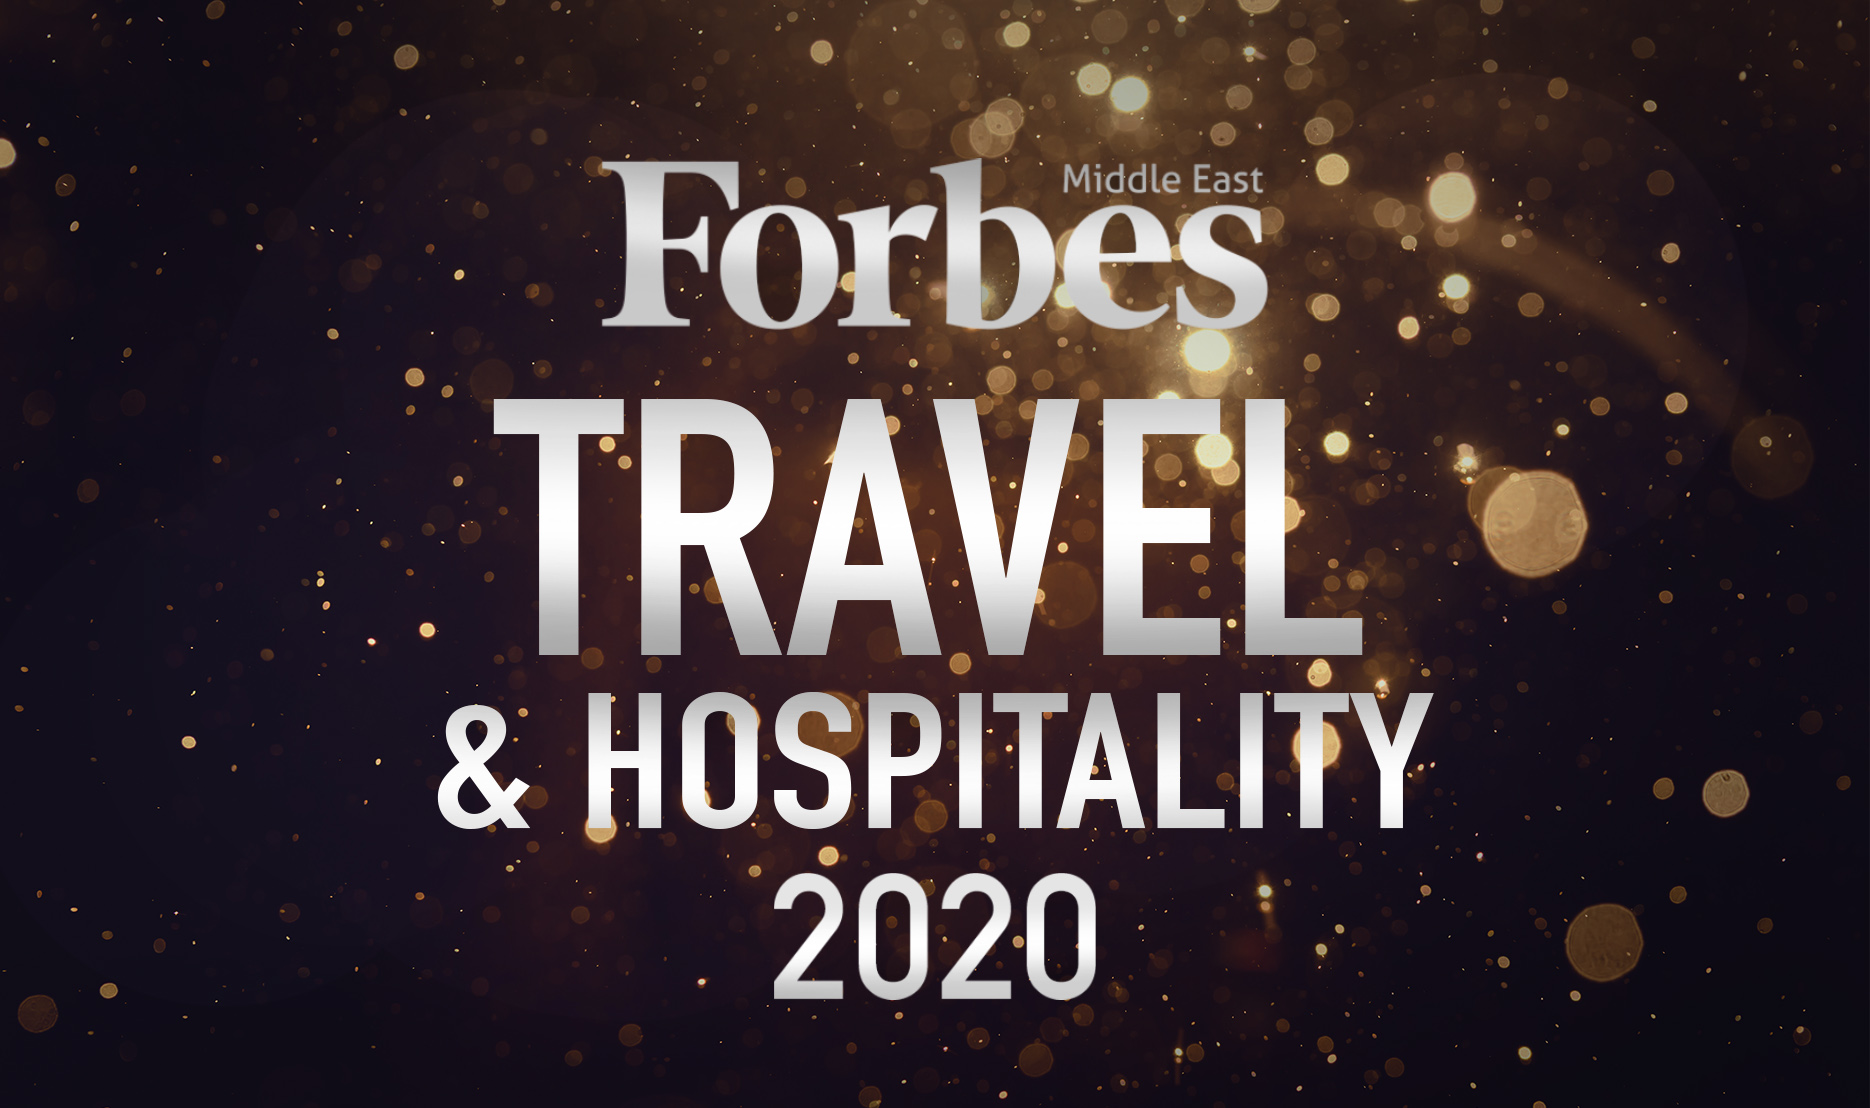 Forbes Middle East - Travel & Hospitality Voting